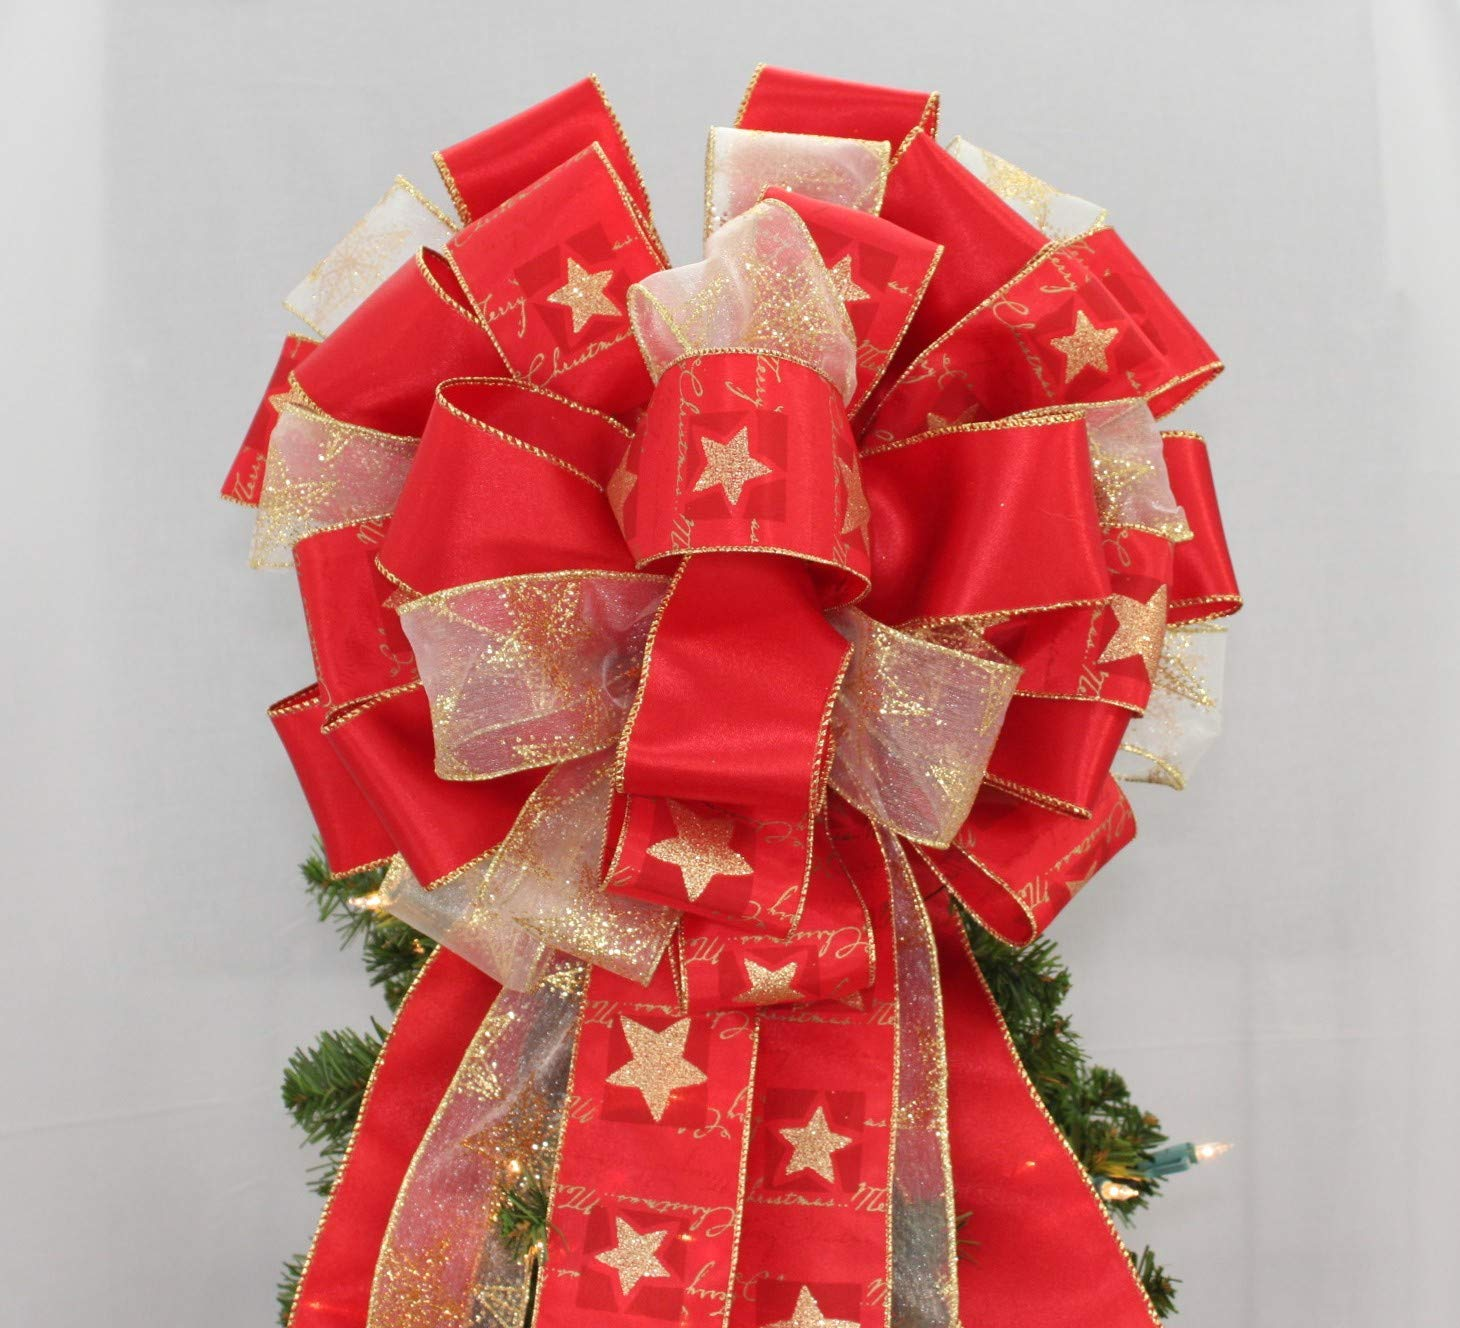 ae59491d32e7 Cheap Christmas Tree Red And Gold, find Christmas Tree Red And Gold ...